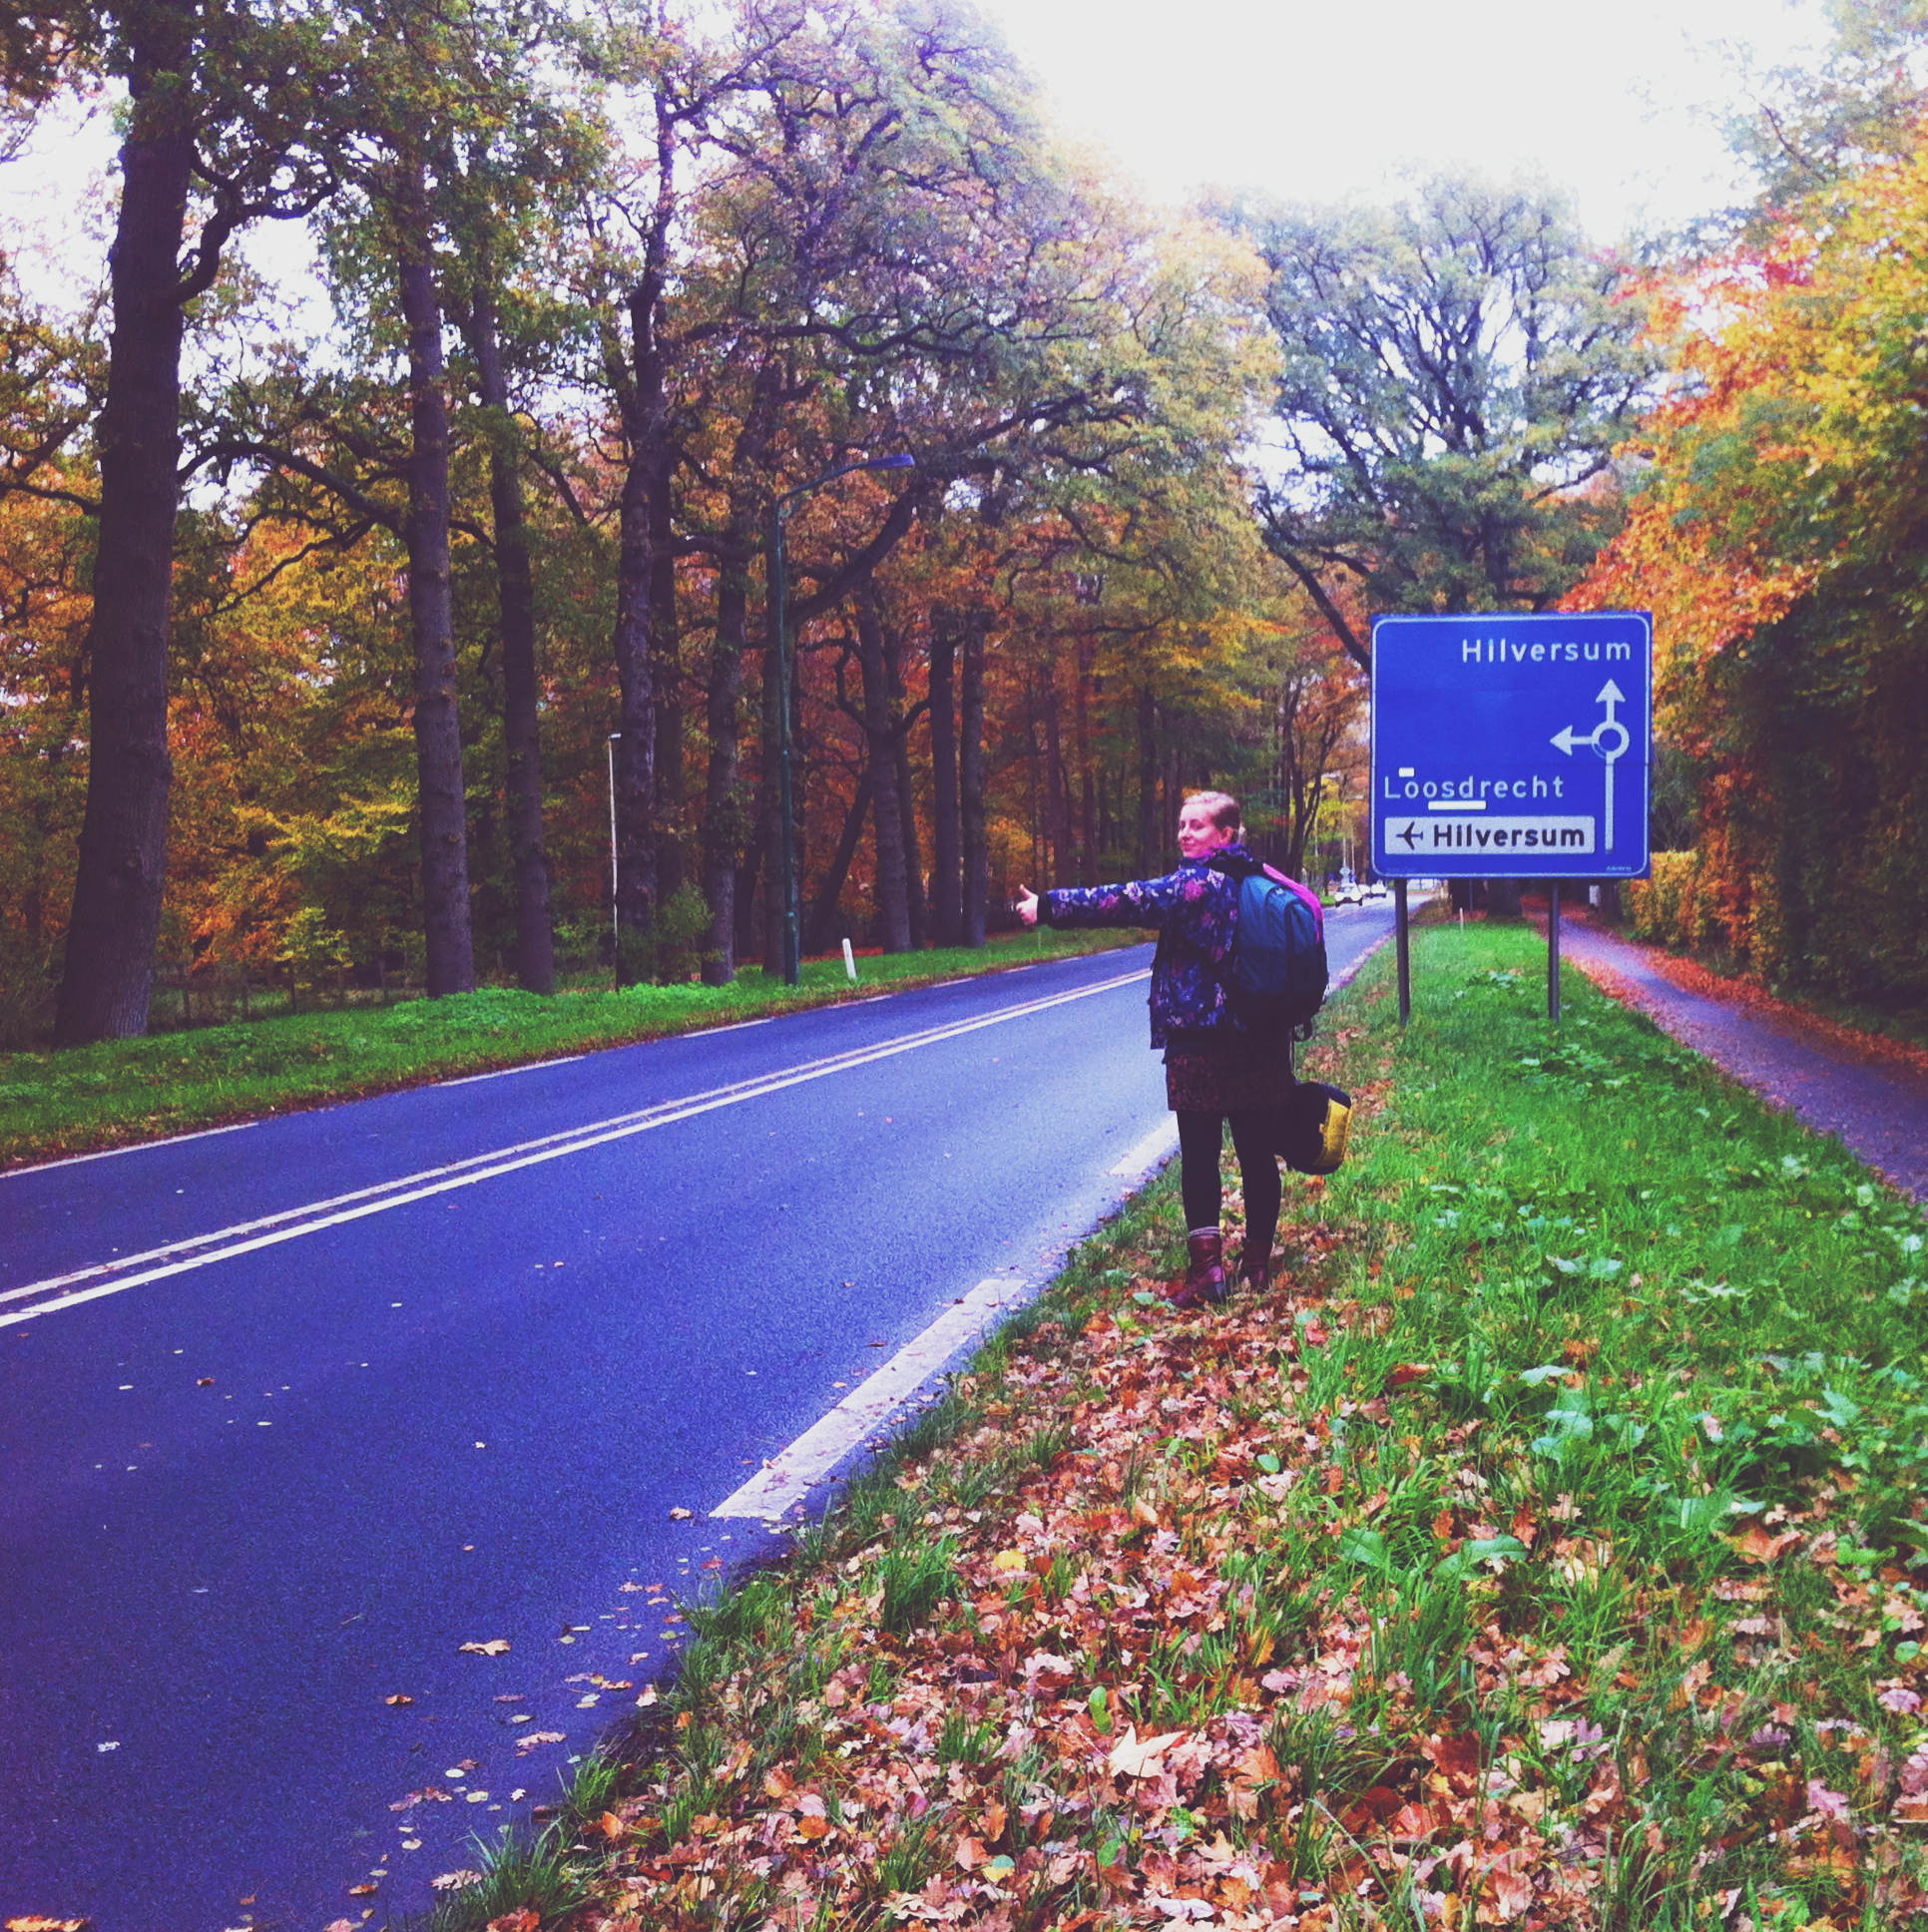 canary islands hitchhiking holland solo female travel